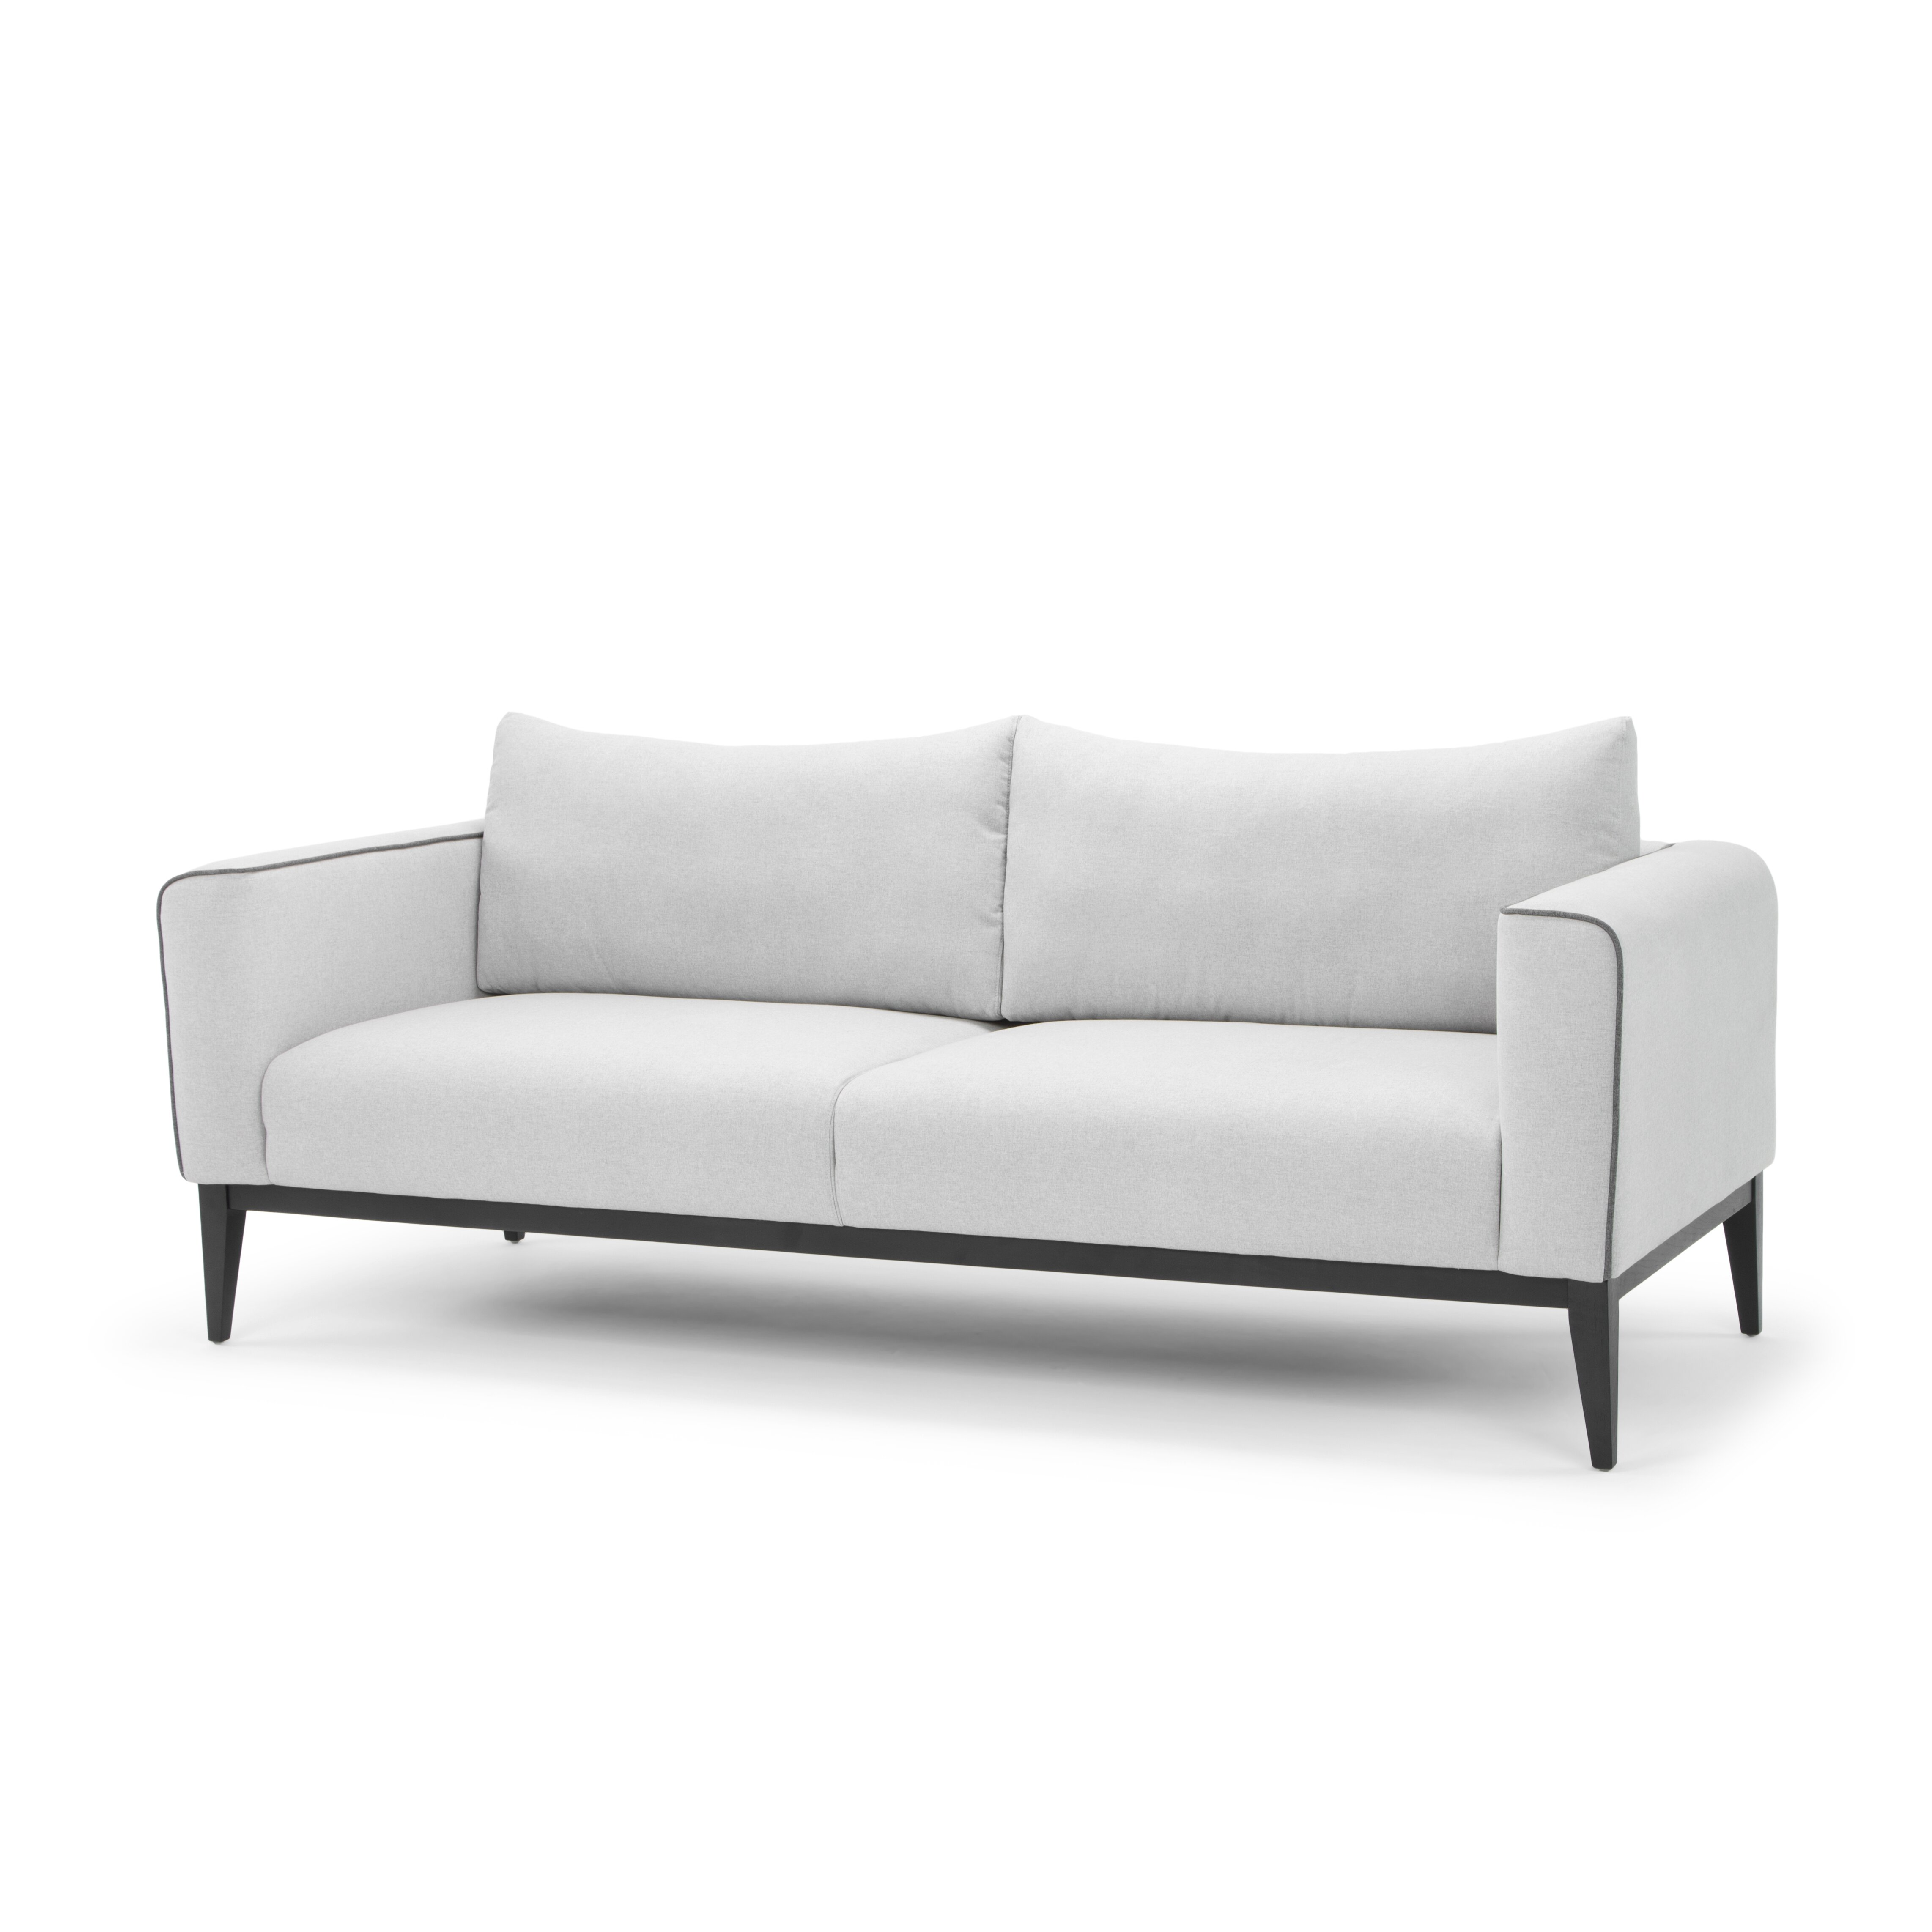 Nordic upholstery storm classic mid century modern sofa for Sofa nordic